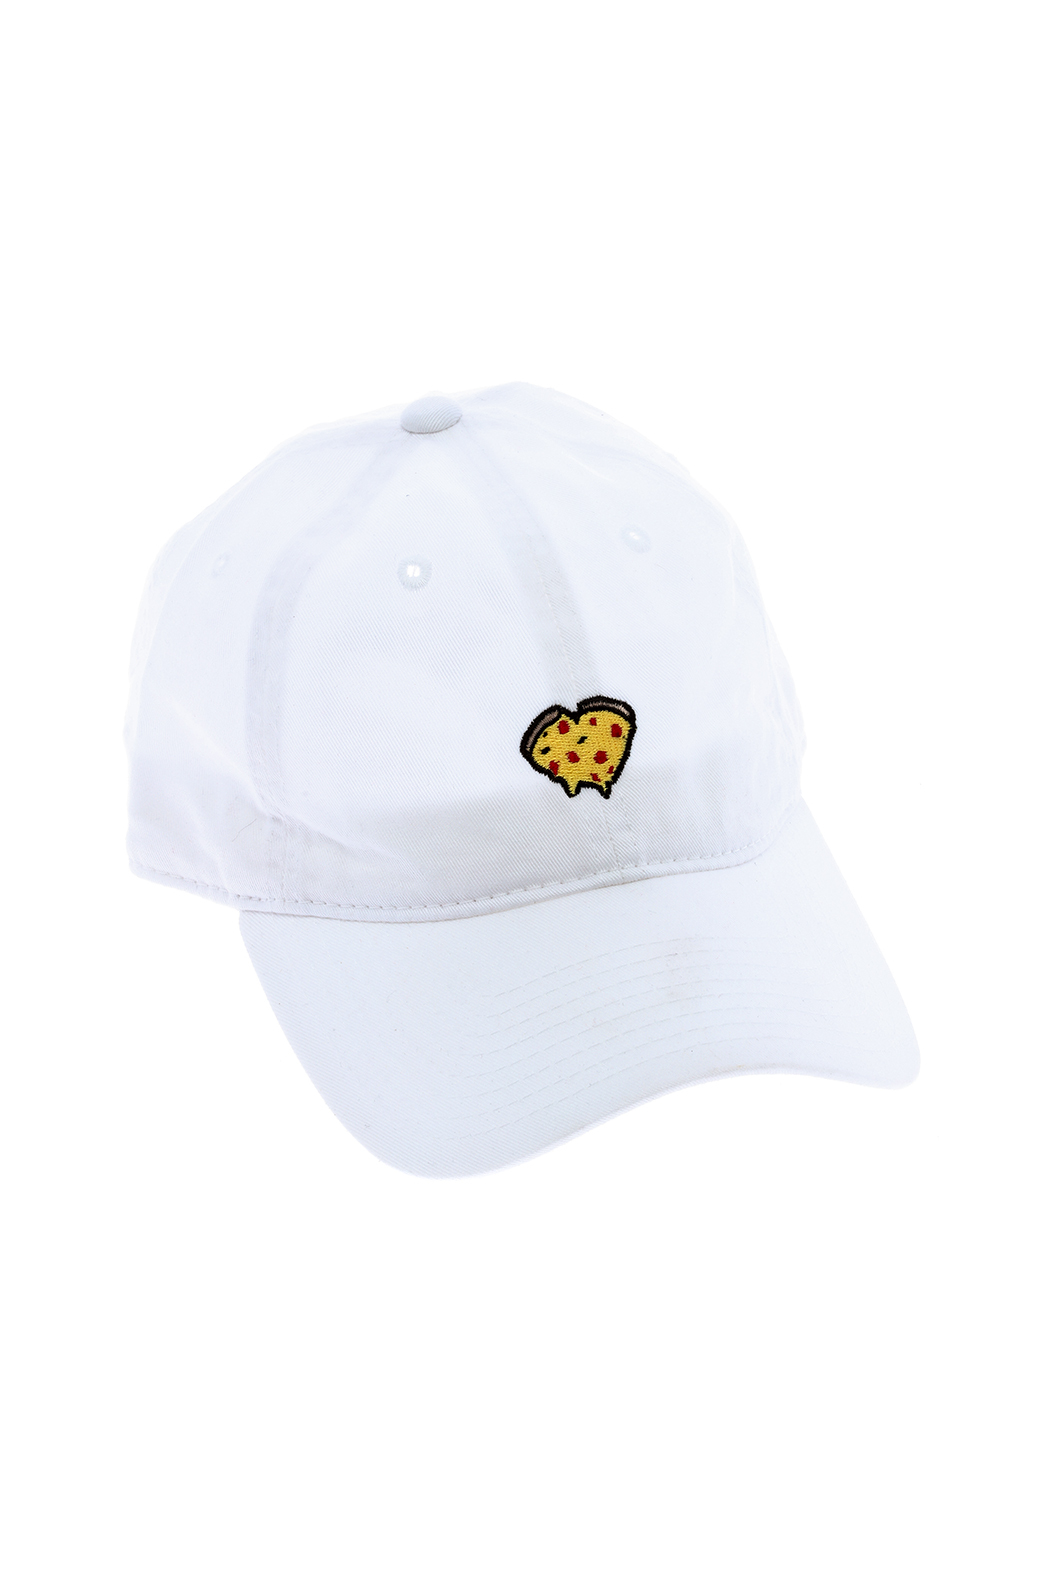 9be1a6f3893 Gravity LA Pizza My Heart Dad Baseball Hat from California — Shoptiques